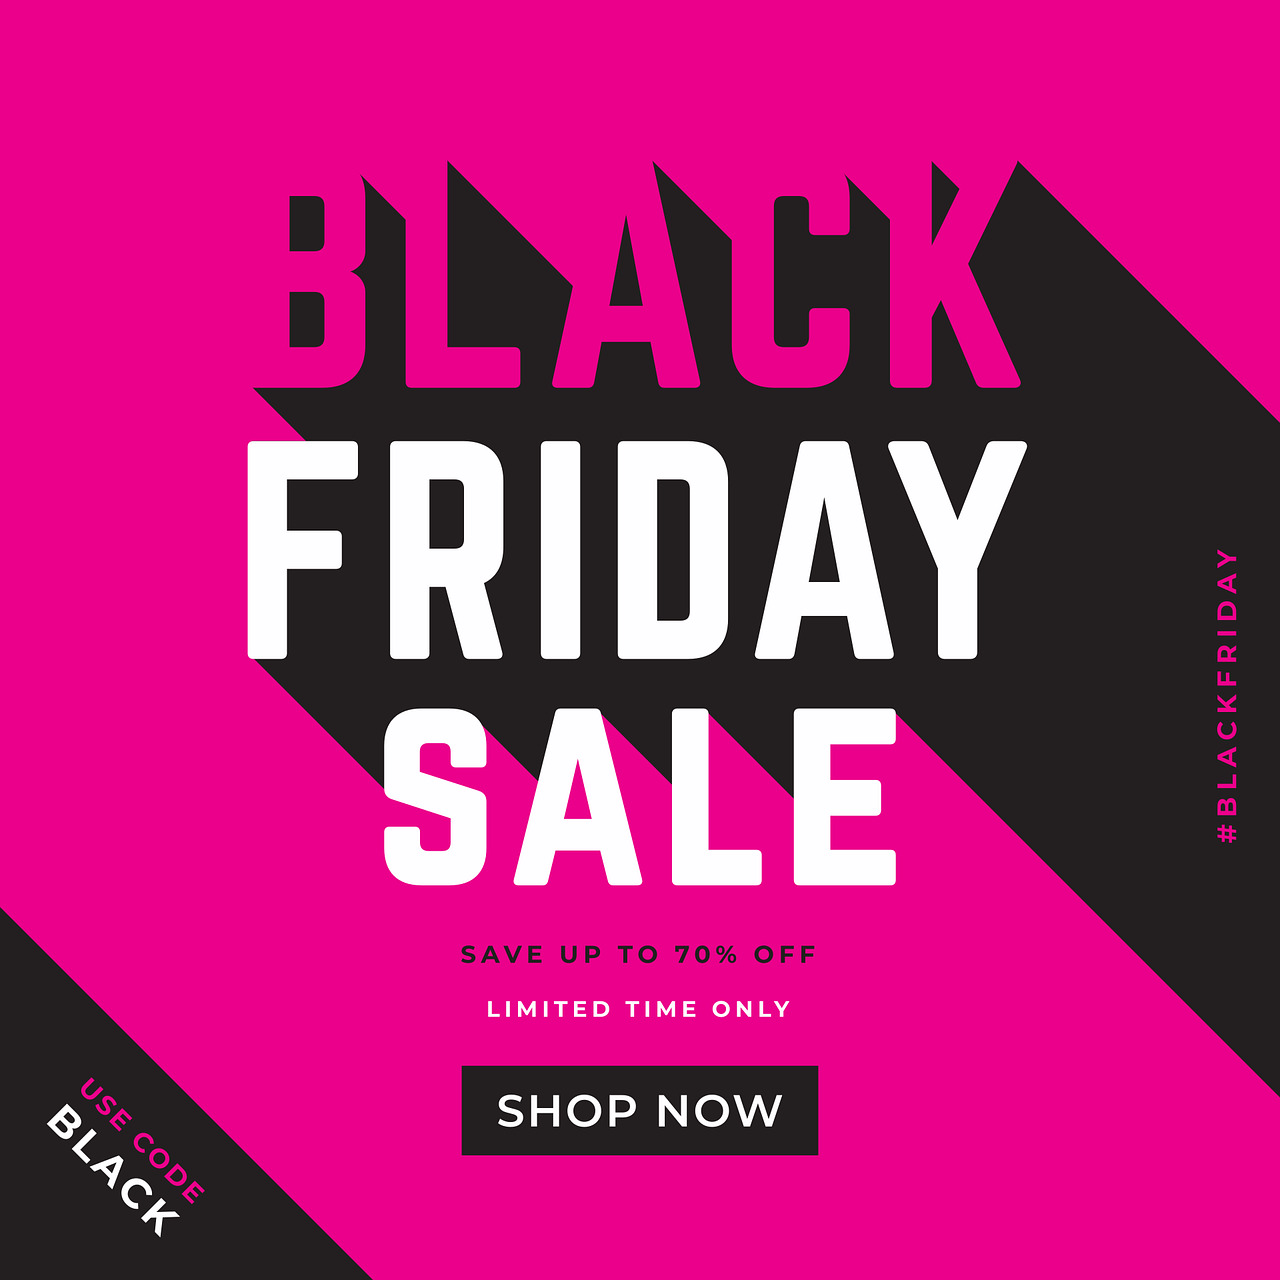 black-friday-social-media-post-4606225_1280-1280x1280.png